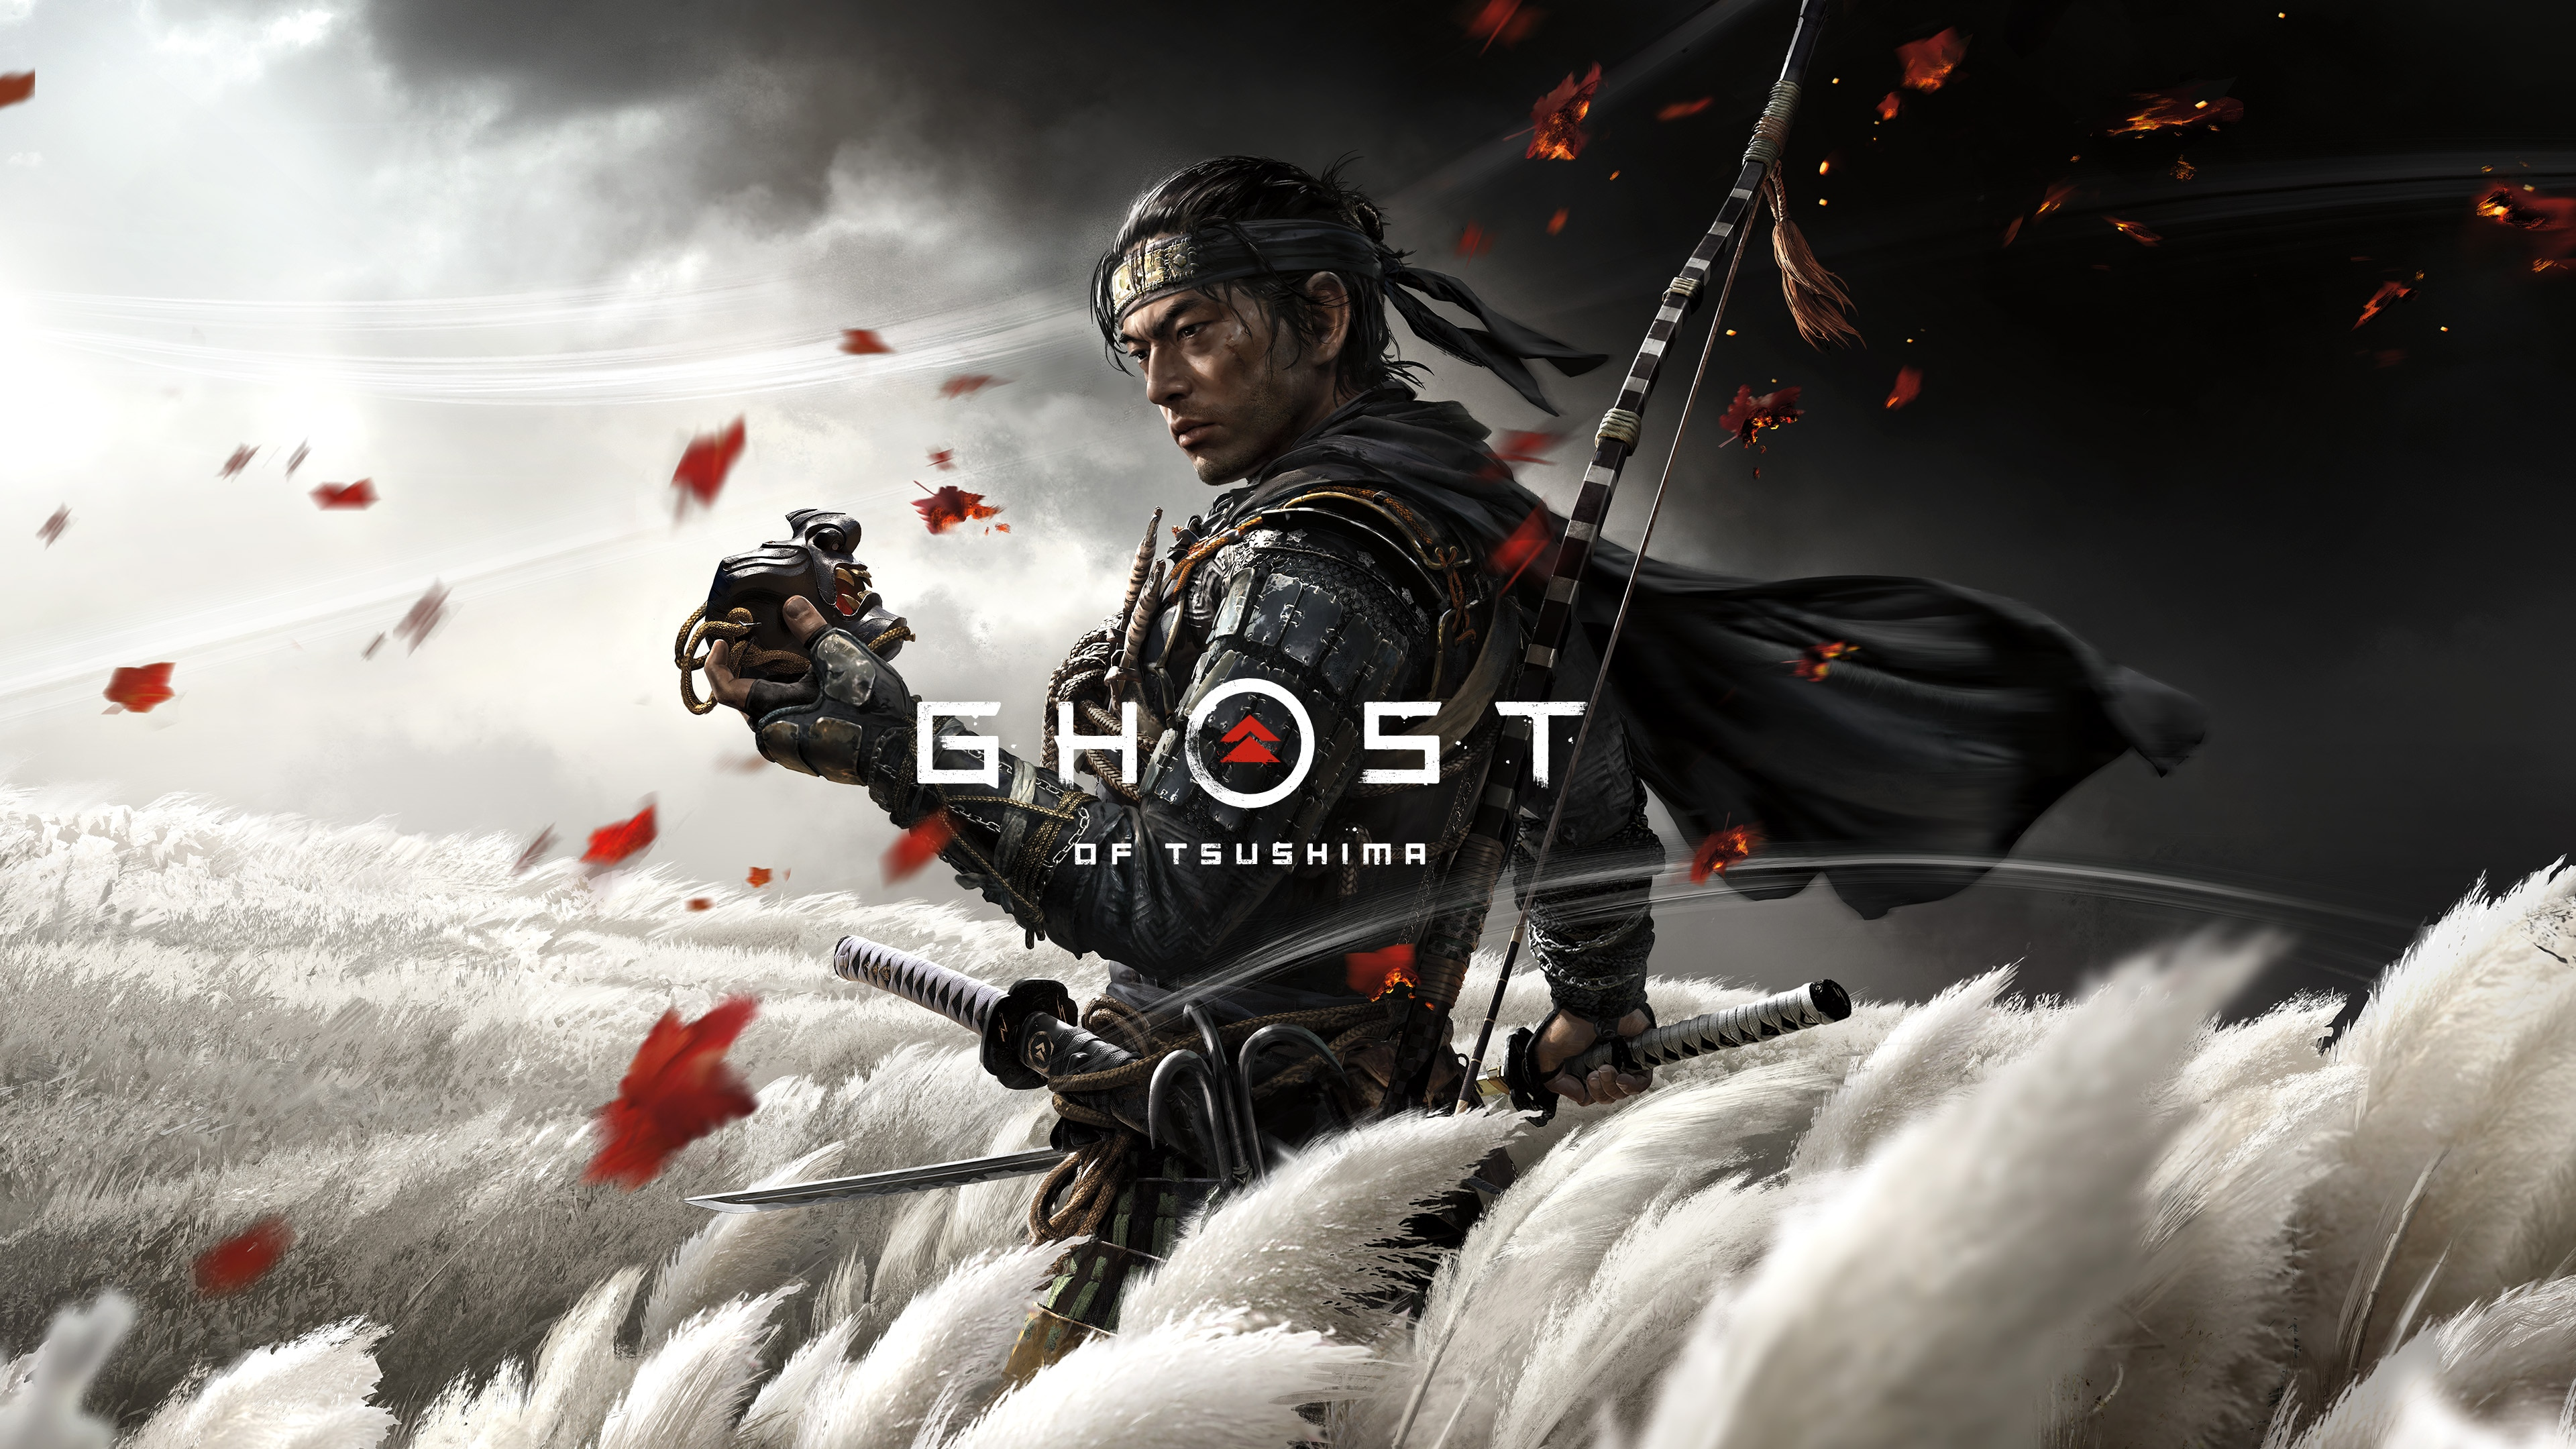 Ghost of Tsushima (Simplified Chinese, English, Korean, Thai, Japanese, Traditional Chinese)